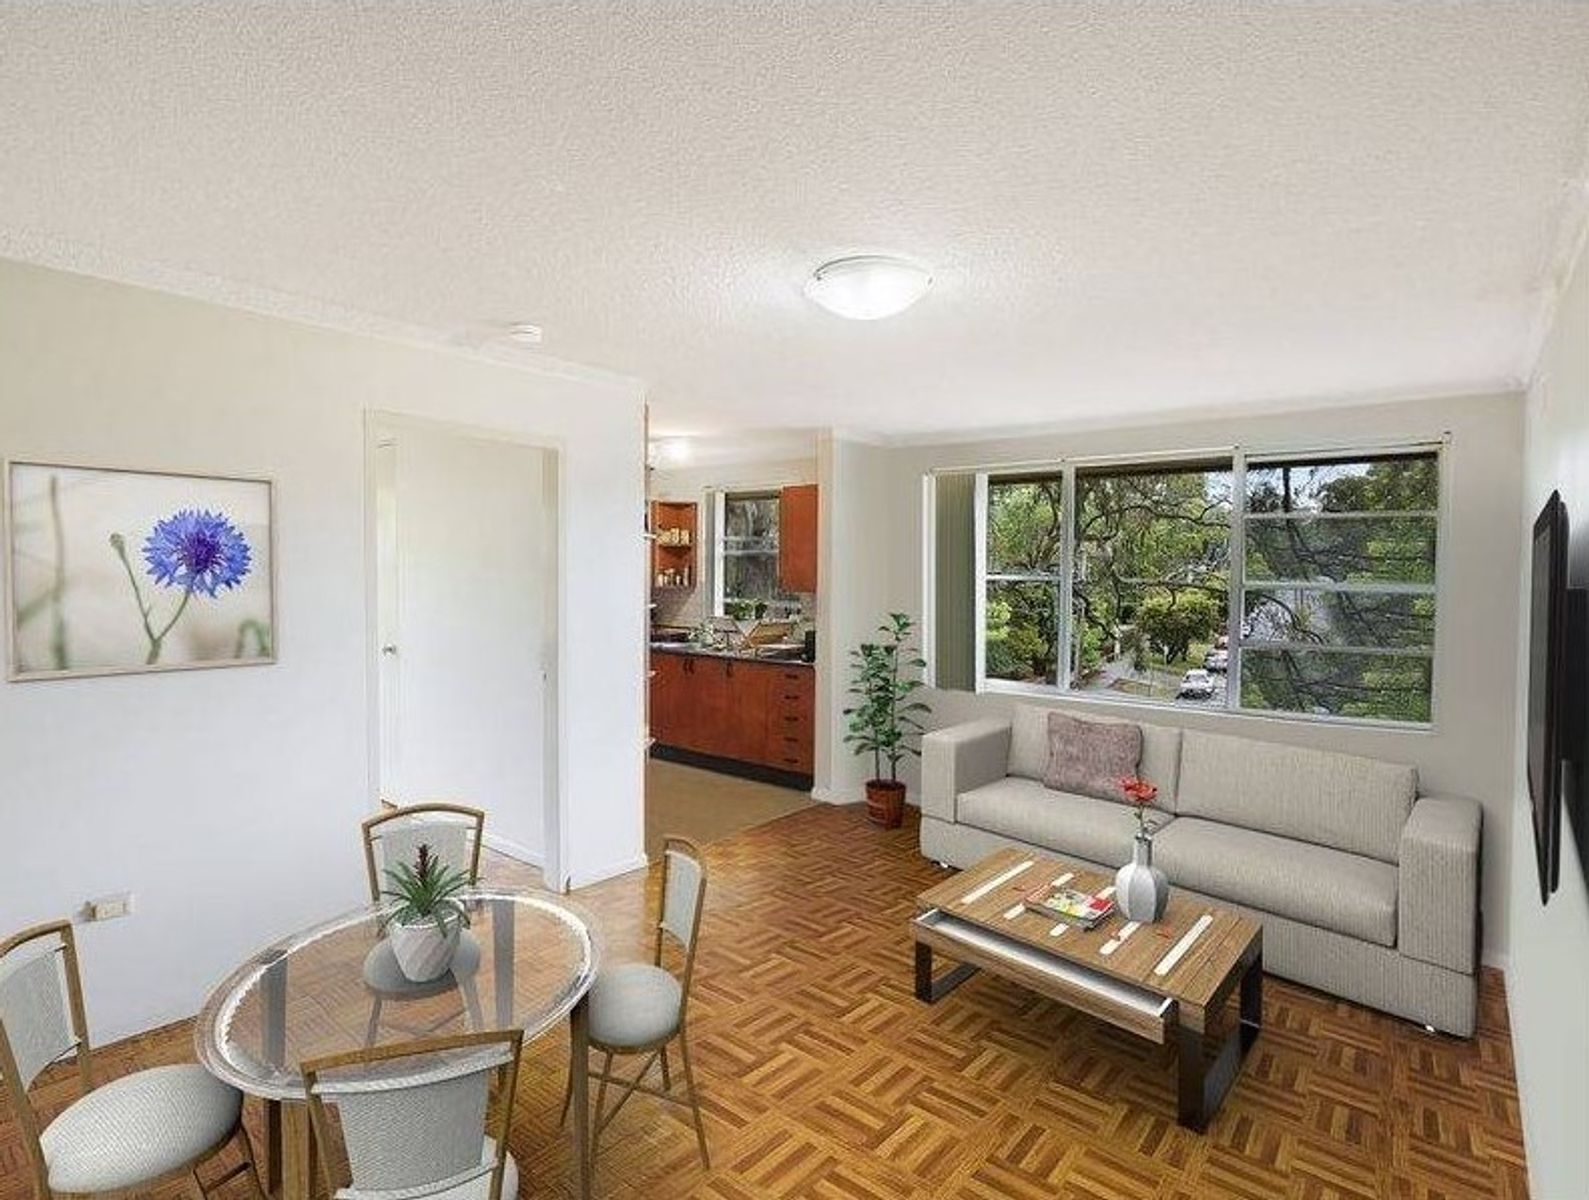 10/54 Meadow Crescent, Meadowbank, NSW 2114